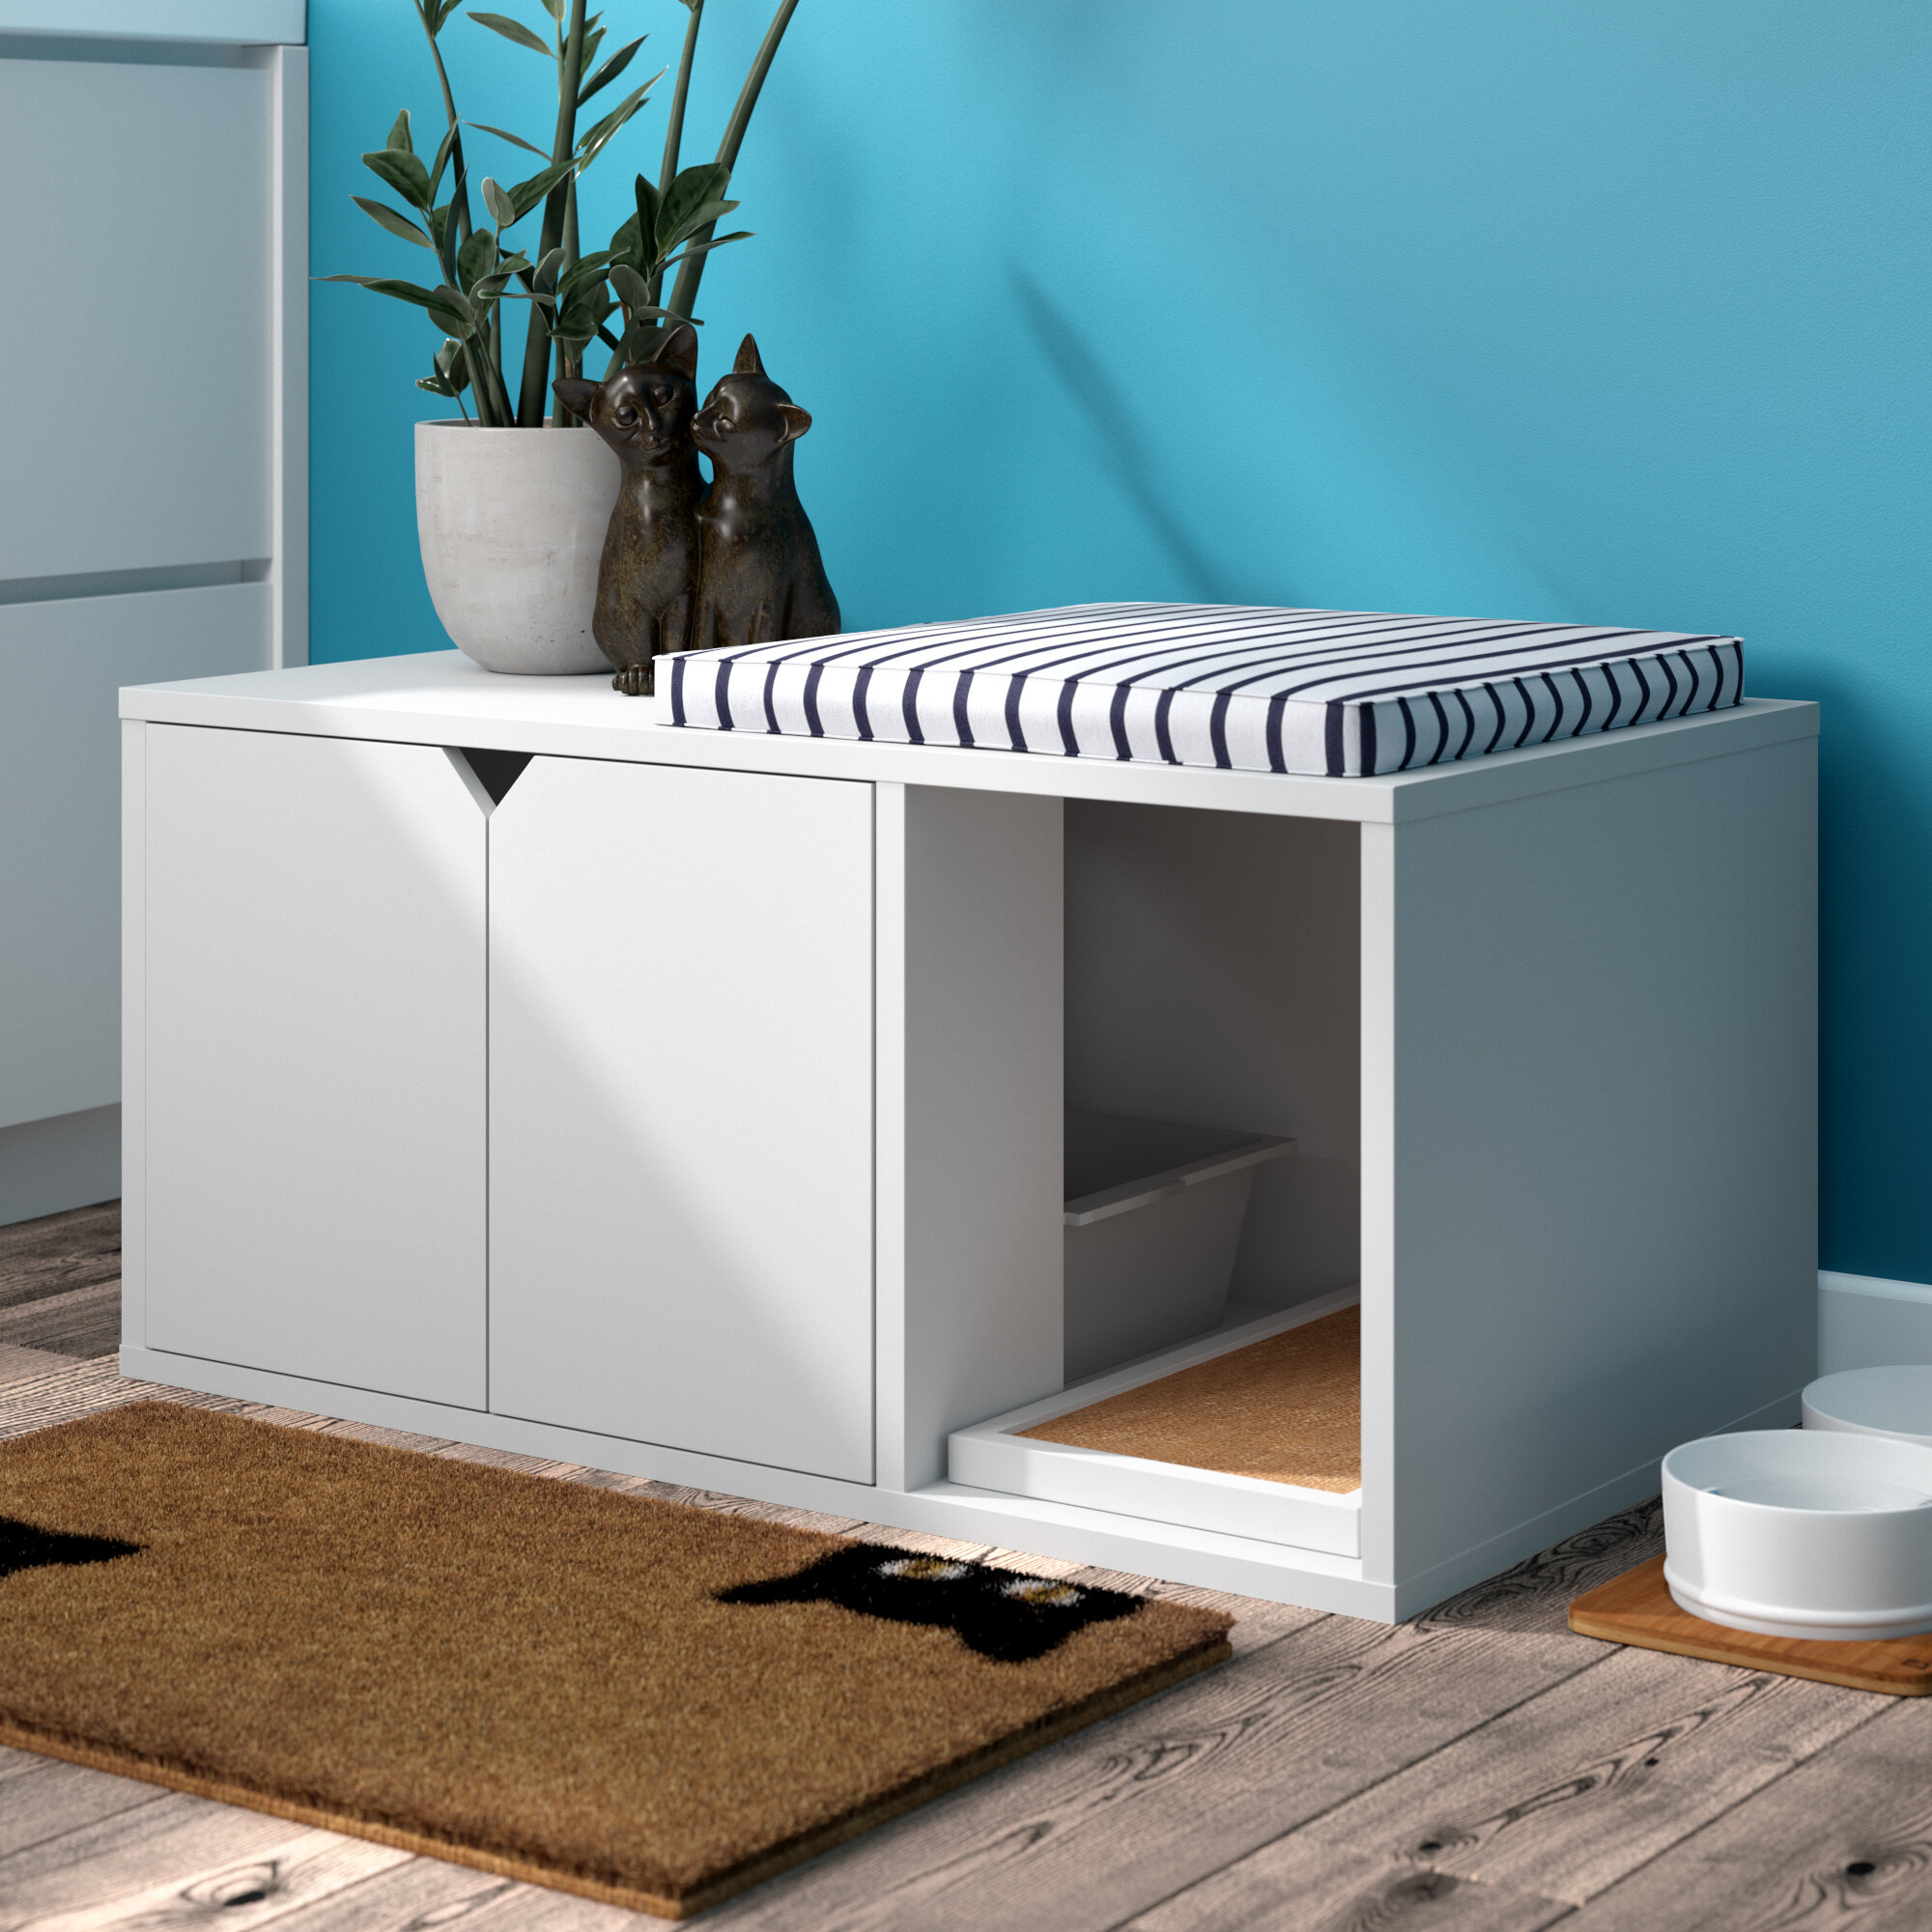 Grinnell Eco Litter Box Enclosure